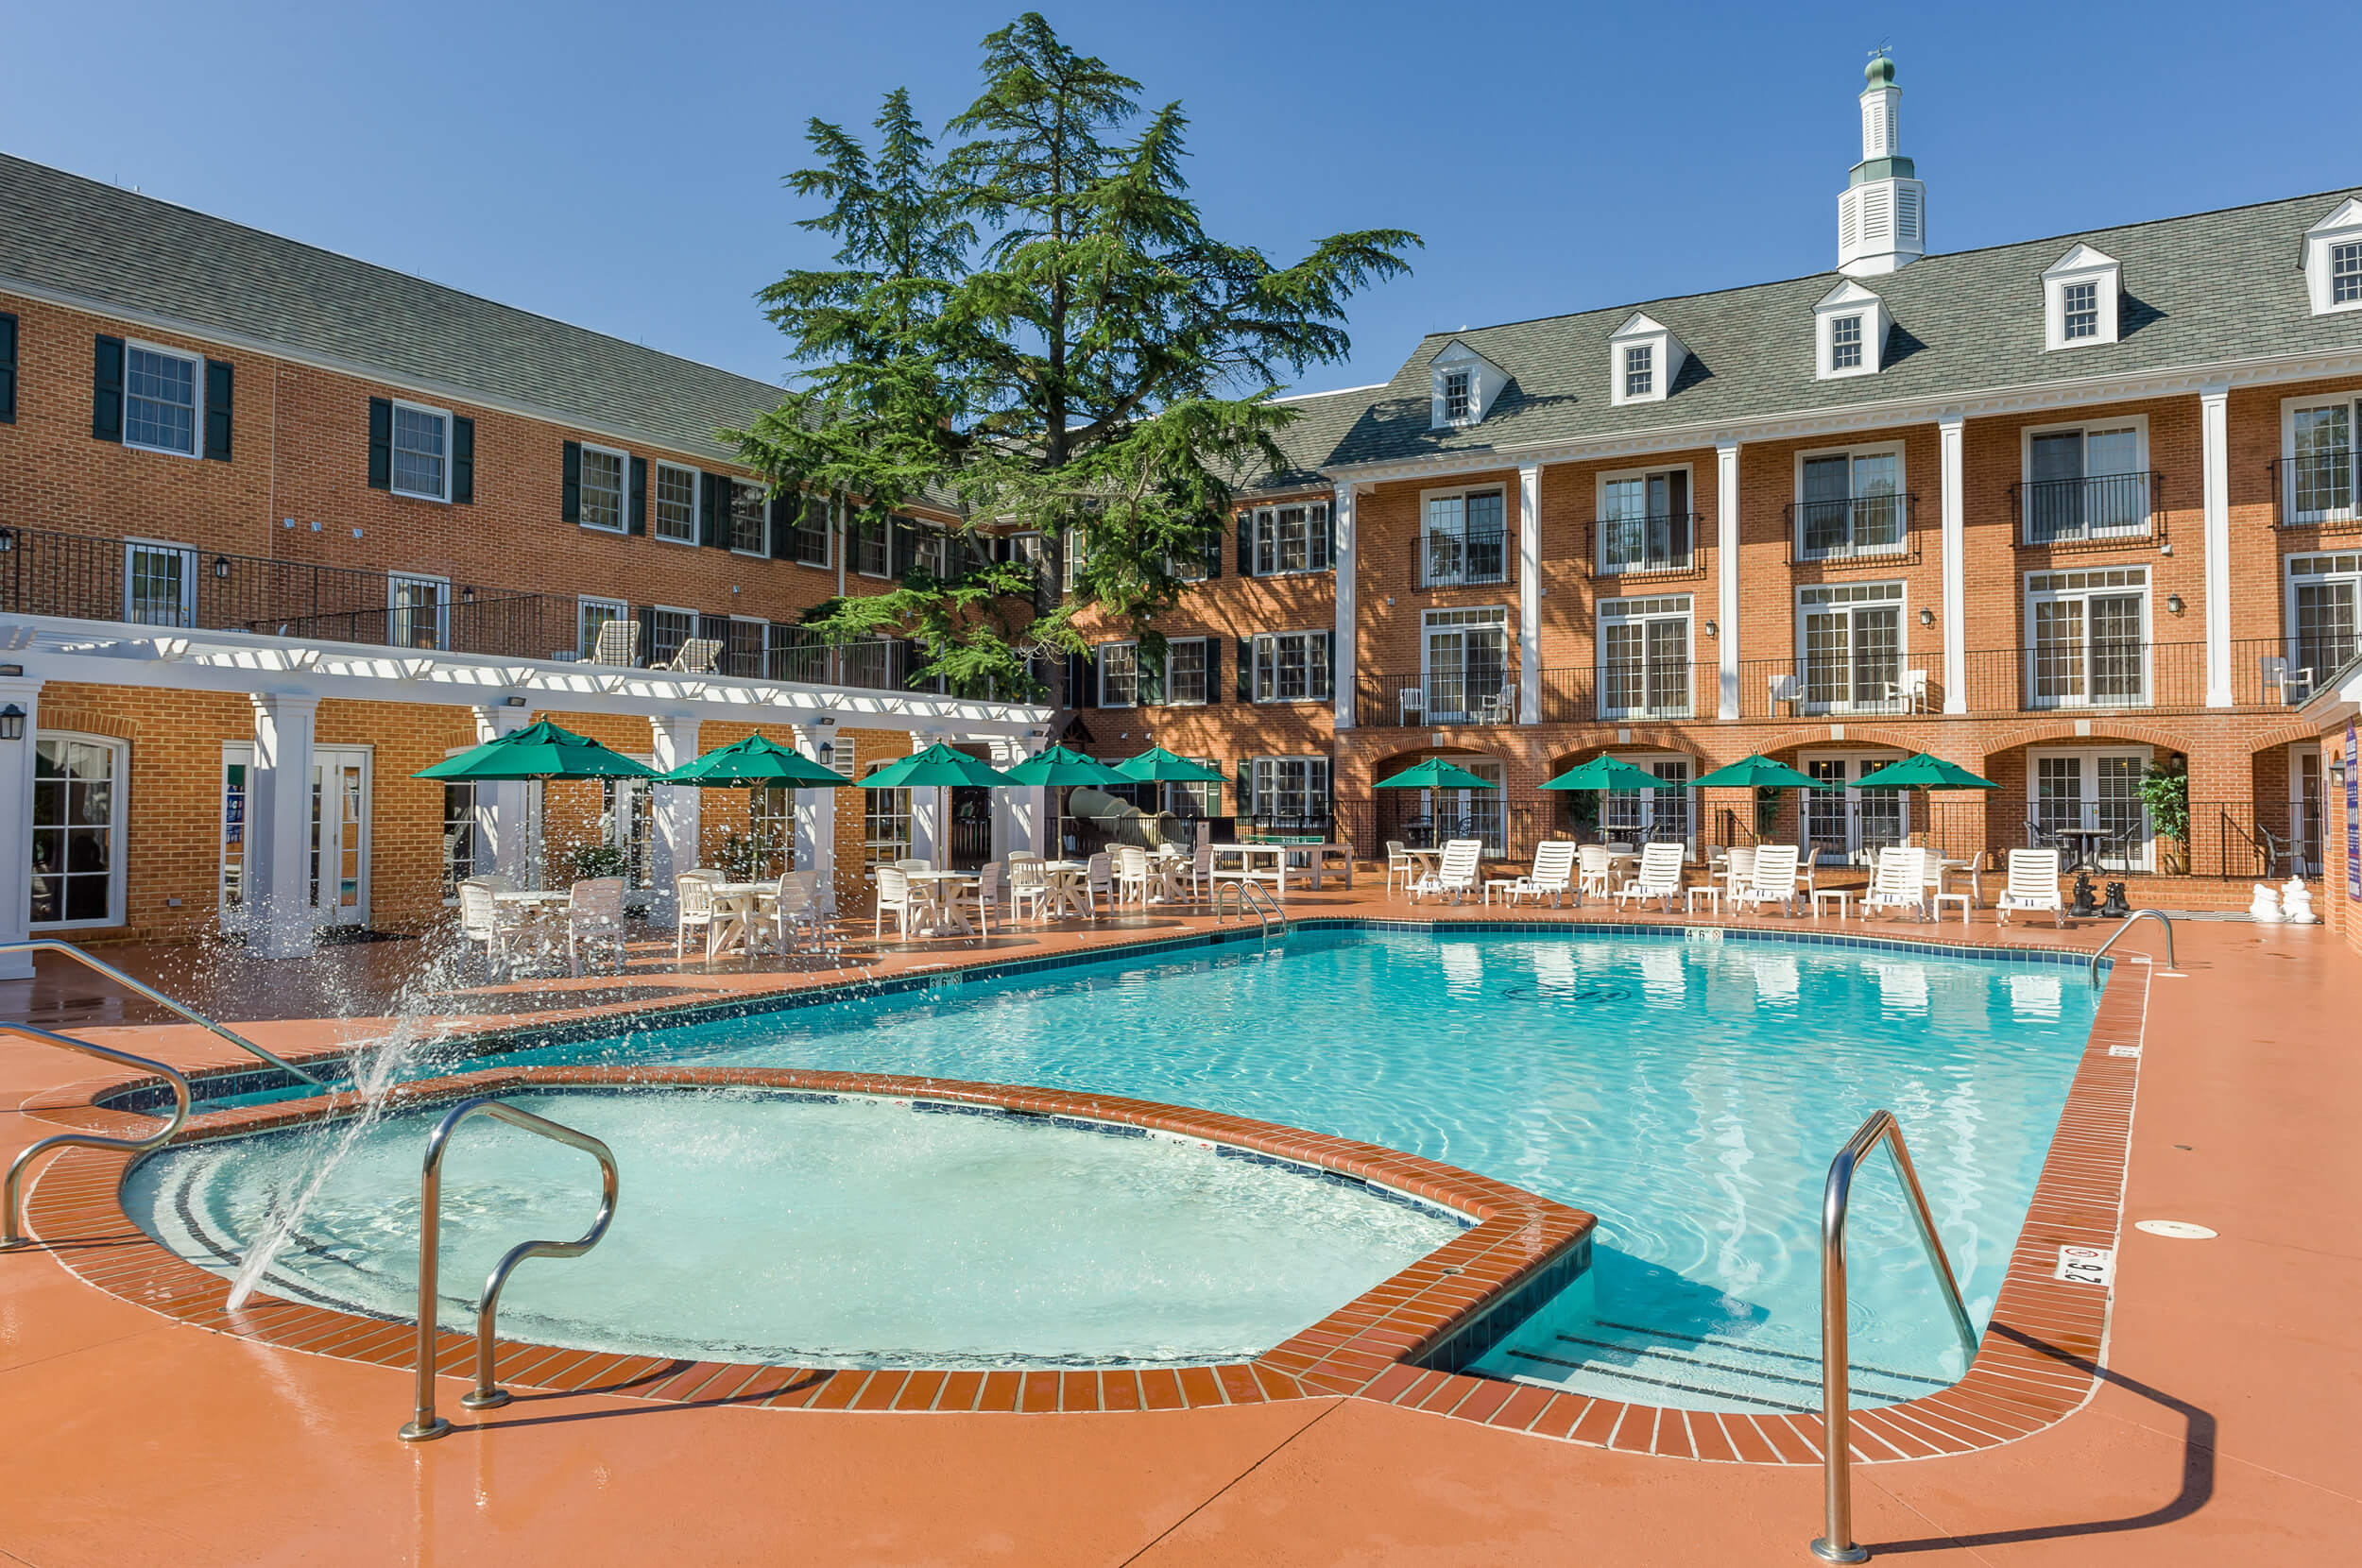 Colonial-style resort with heated outdoor pool | Westgate Historic Williamsburg Resort